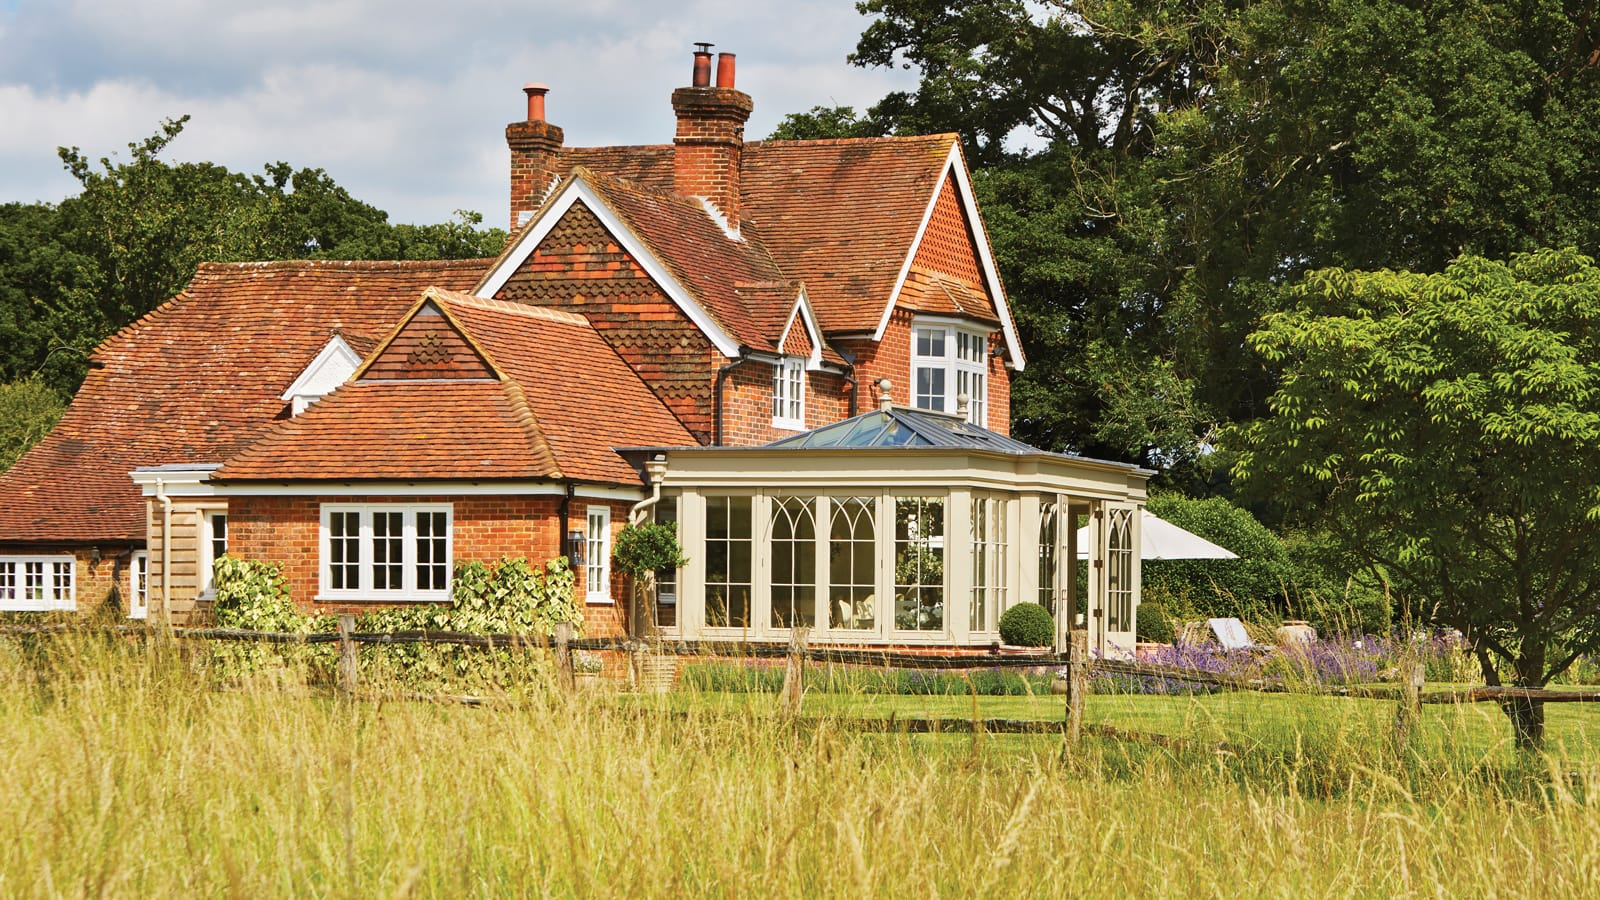 Bespoke Orangery for Grade II Listed property in Surrey